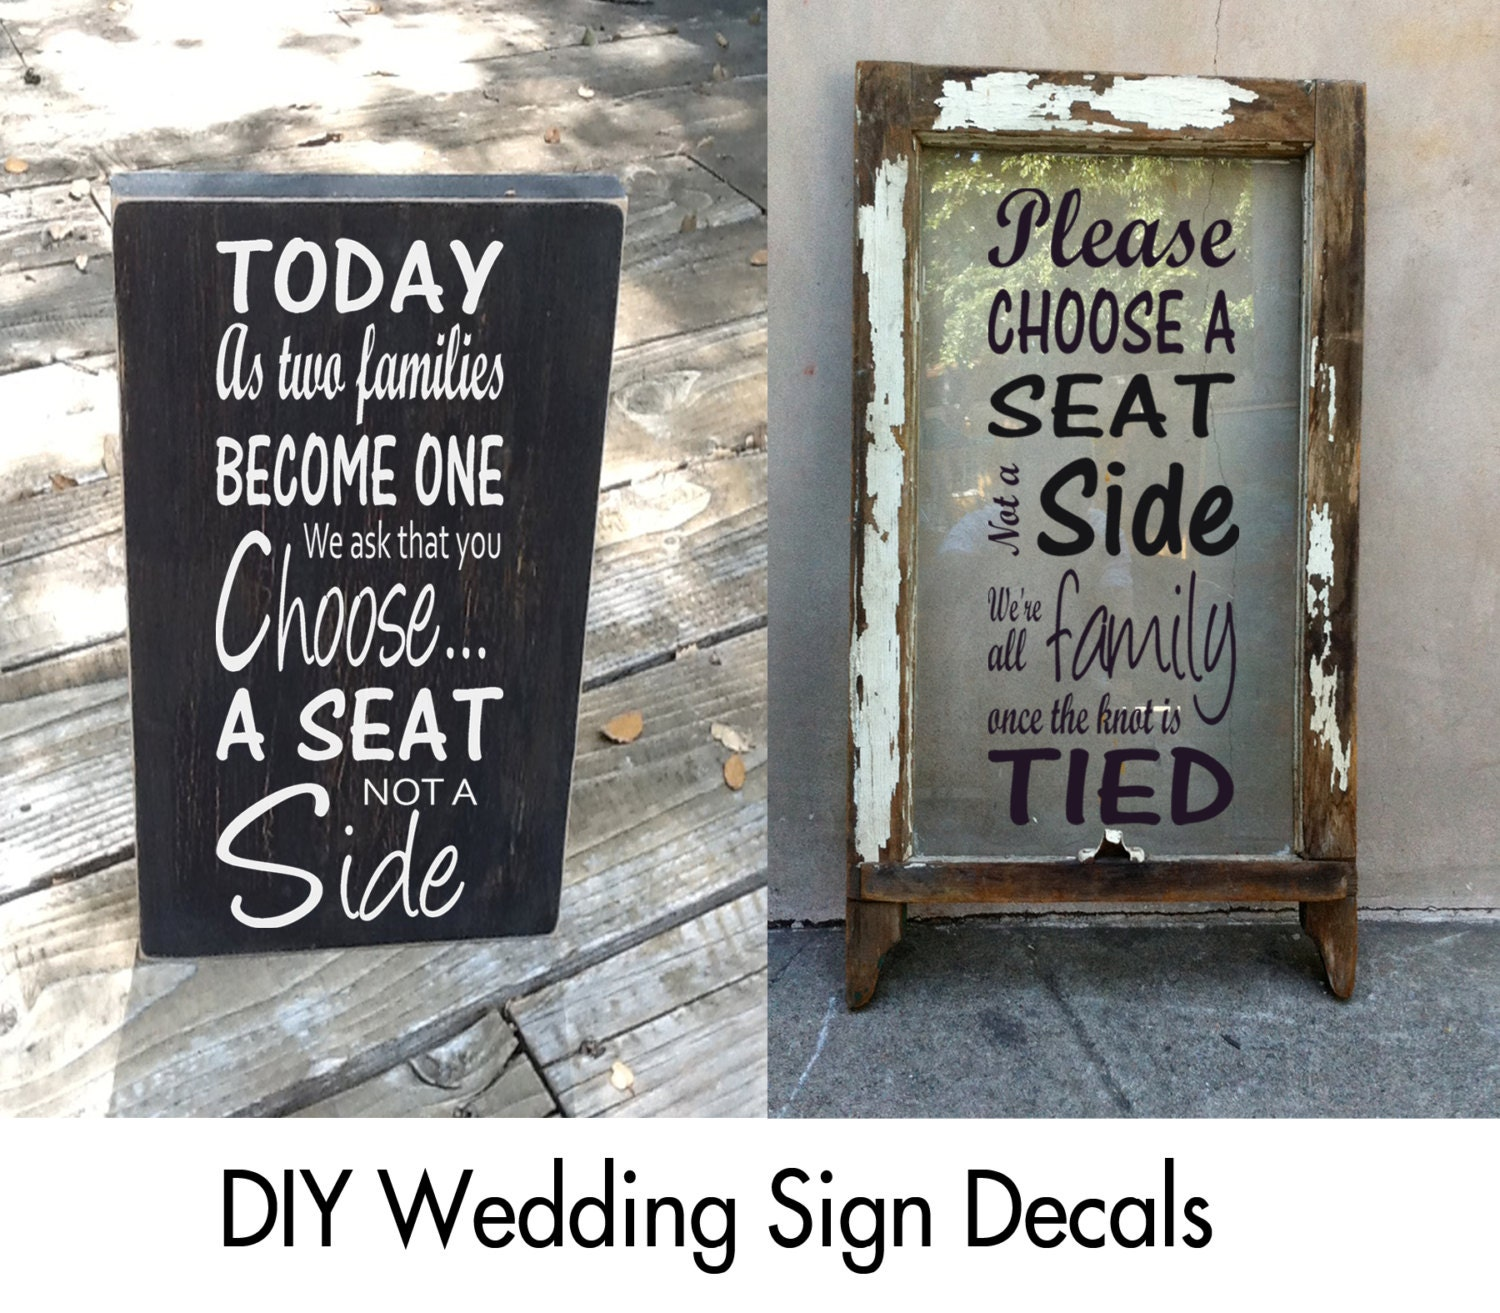 Choose A Seat Not A Side Sign Decal Wedding Decals Today